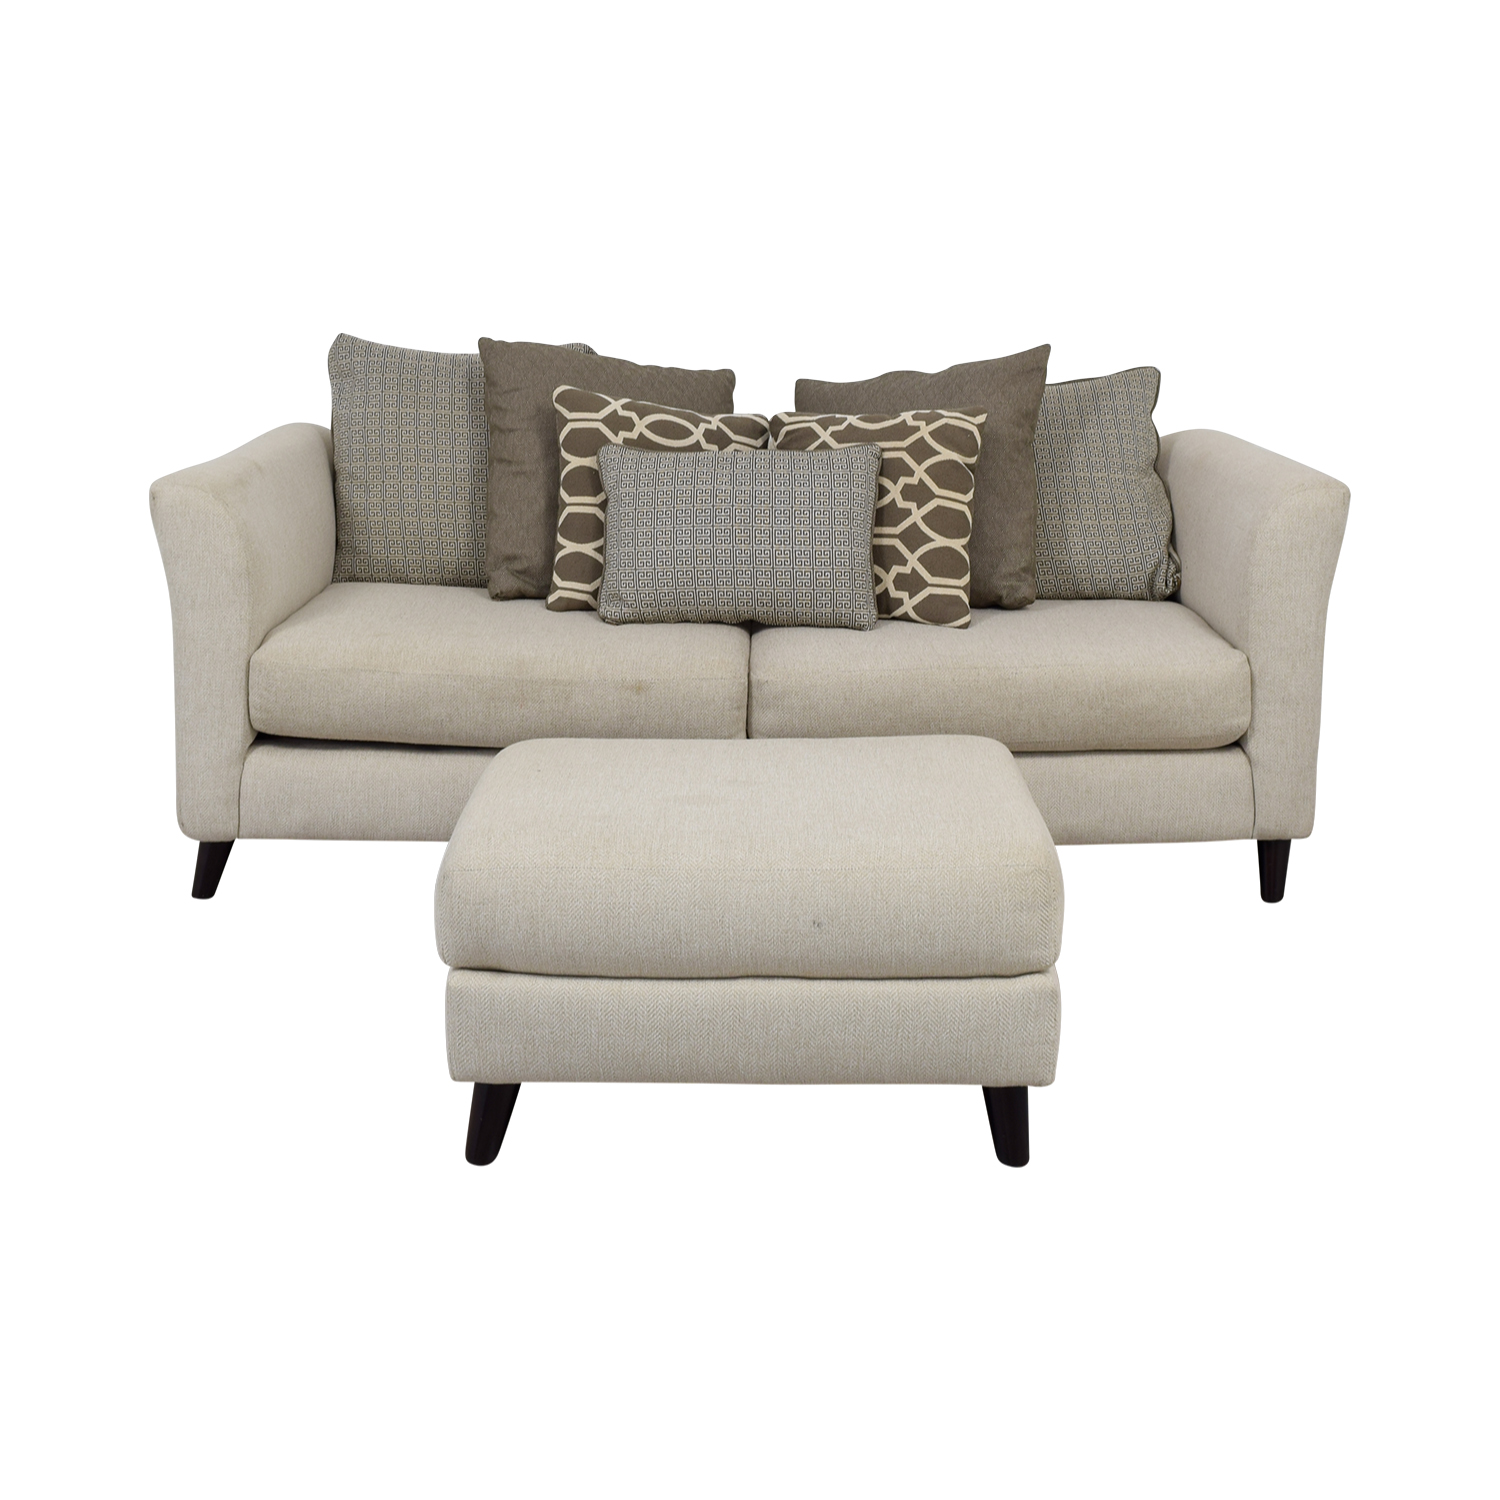 Raymour & Flanigan Kinsella White Two-Cushion Couch and Ottoman Raymour & Flanigan